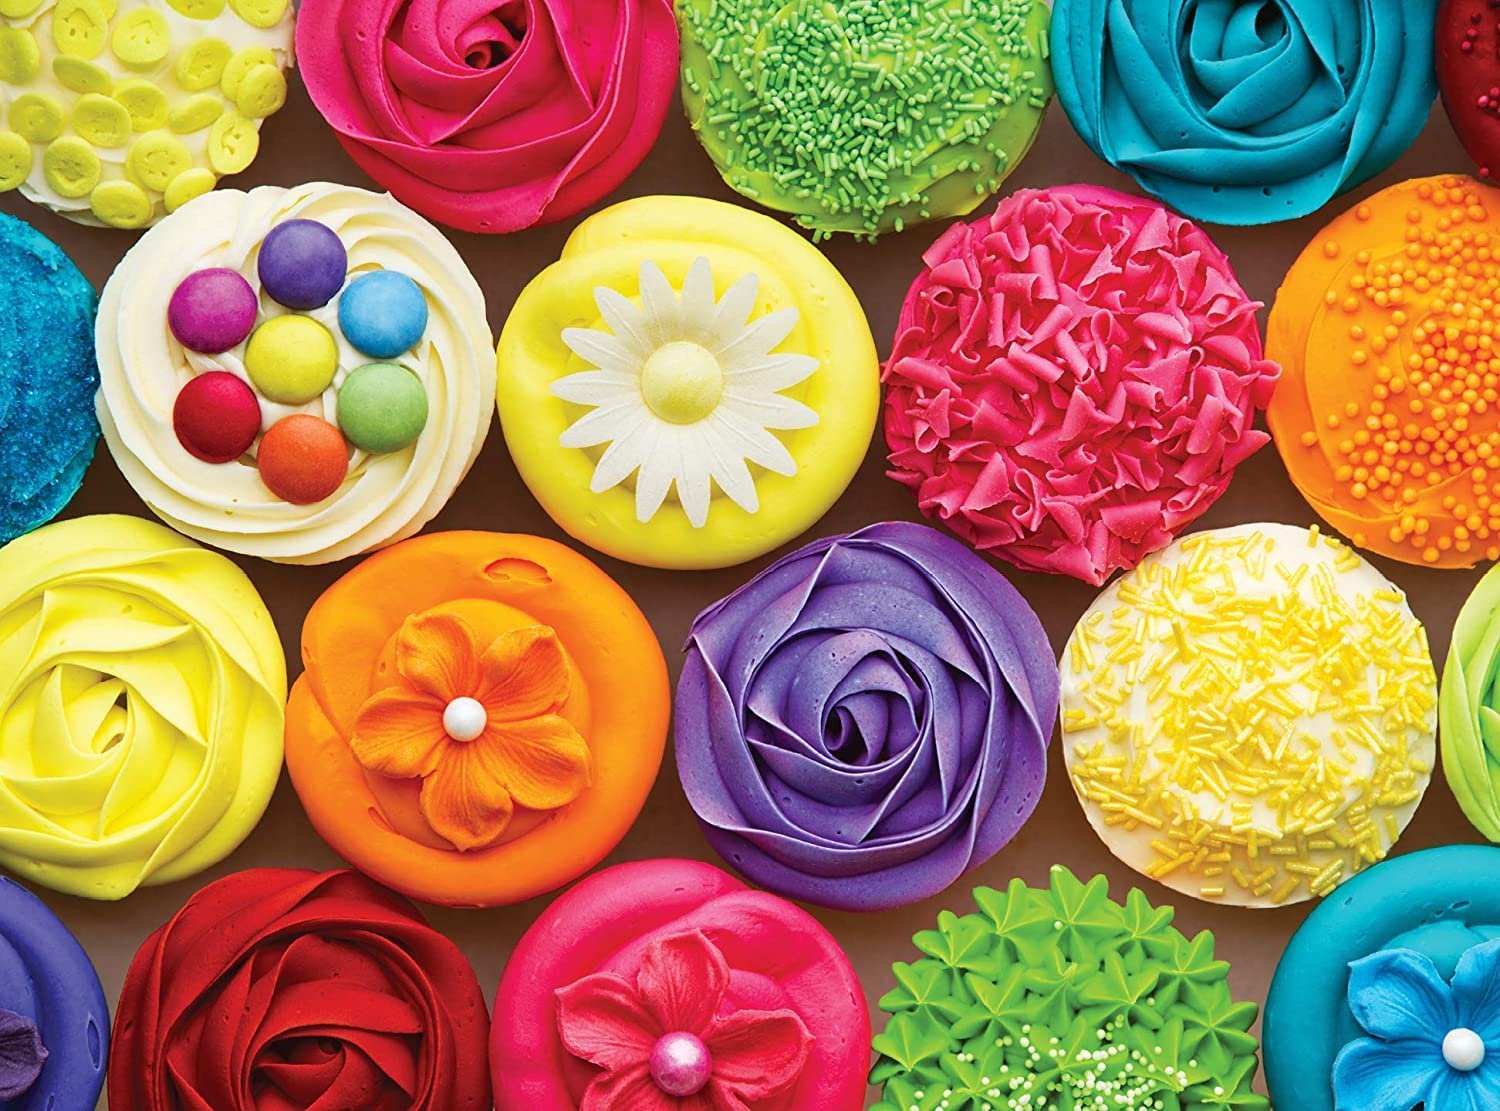 Colorcraft 1000 Piece Jigsaw Puzzle for Adults, Cool Cupcakes